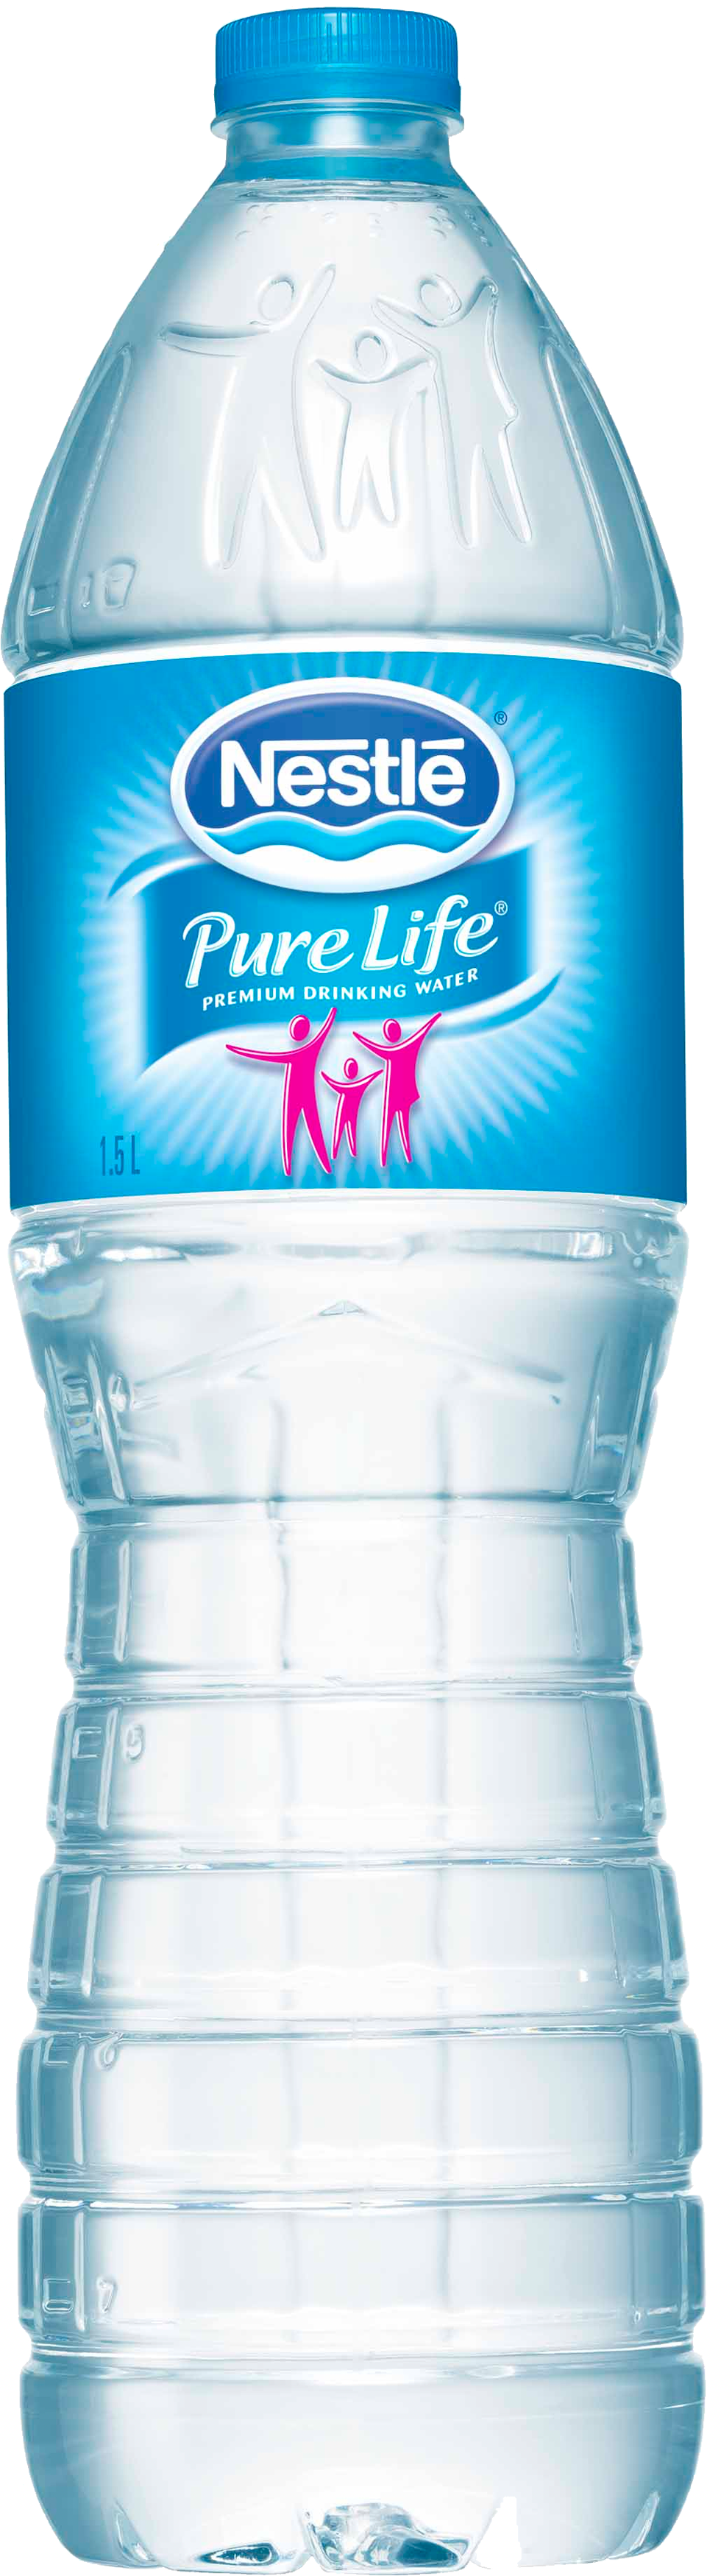 Images free download image. Plastic water bottle png